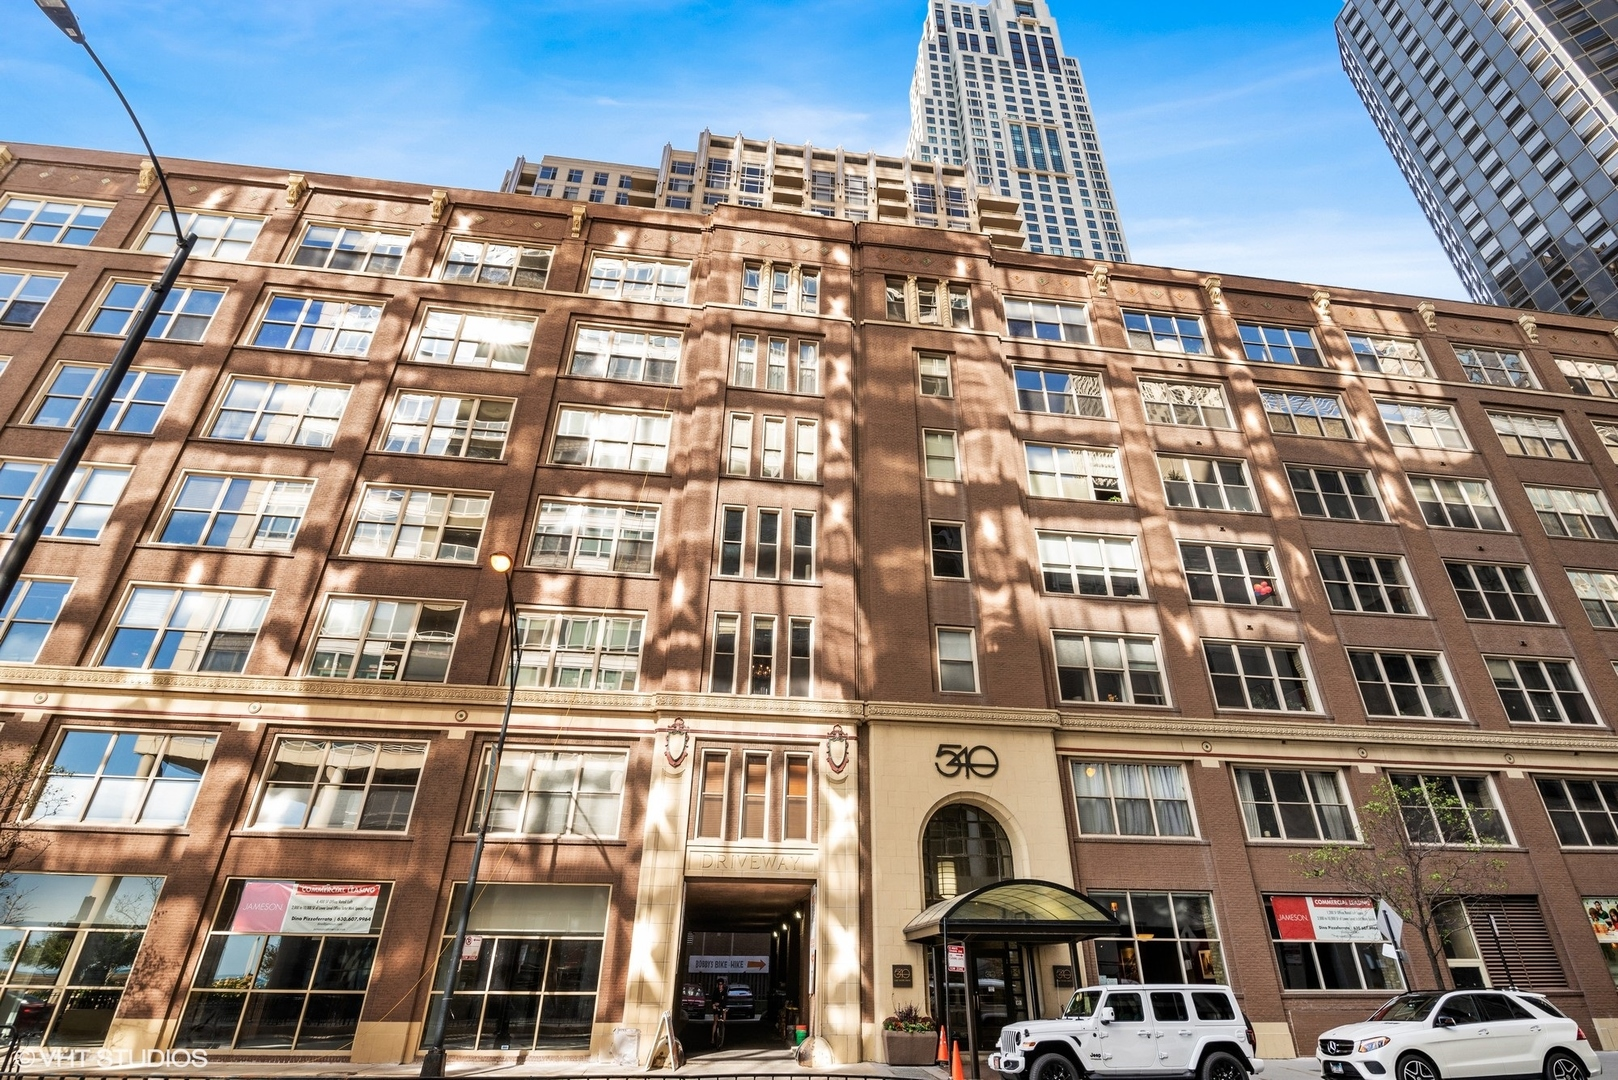 540 LAKE SHORE Drive, Chicago, Illinois 60611, 1 Bedroom Bedrooms, ,1 BathroomBathrooms,Residential Rental,For Rent,LAKE SHORE,10910072